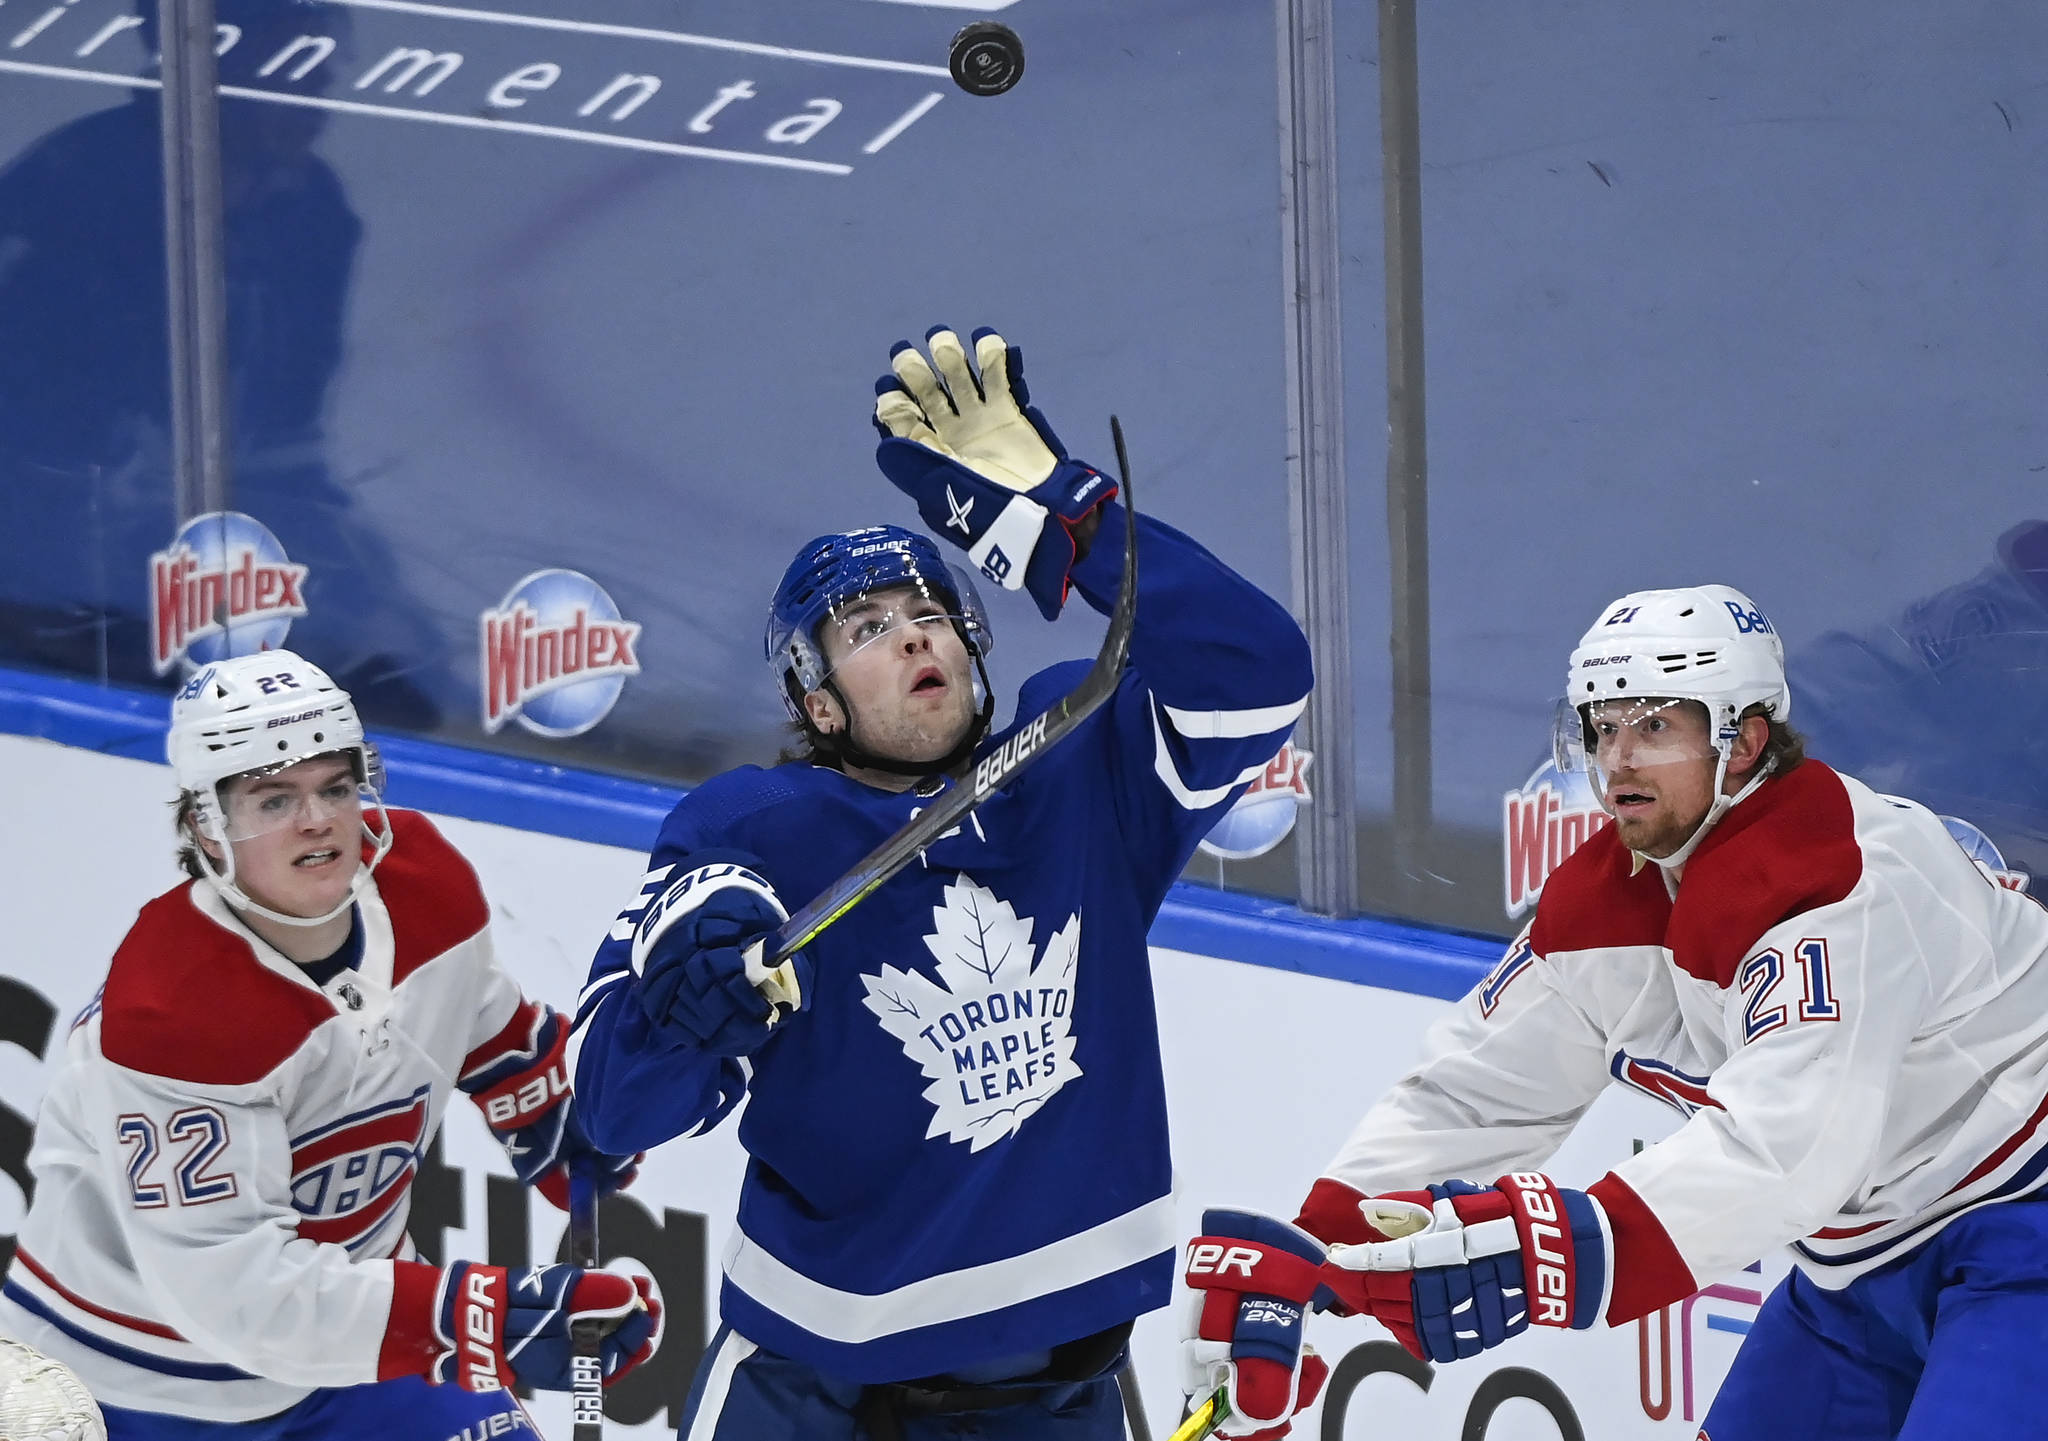 Toronto Maple Leafs defenceman Ben Hutton (55) gloves the loose puck as Montreal Canadiens forward Cole Caufield (22) and Canadiens forward Eric Staal (21) watch during third period NHL hockey action in Toronto on Saturday, May 8, 2021. THE CANADIAN PRESS/Nathan Denette